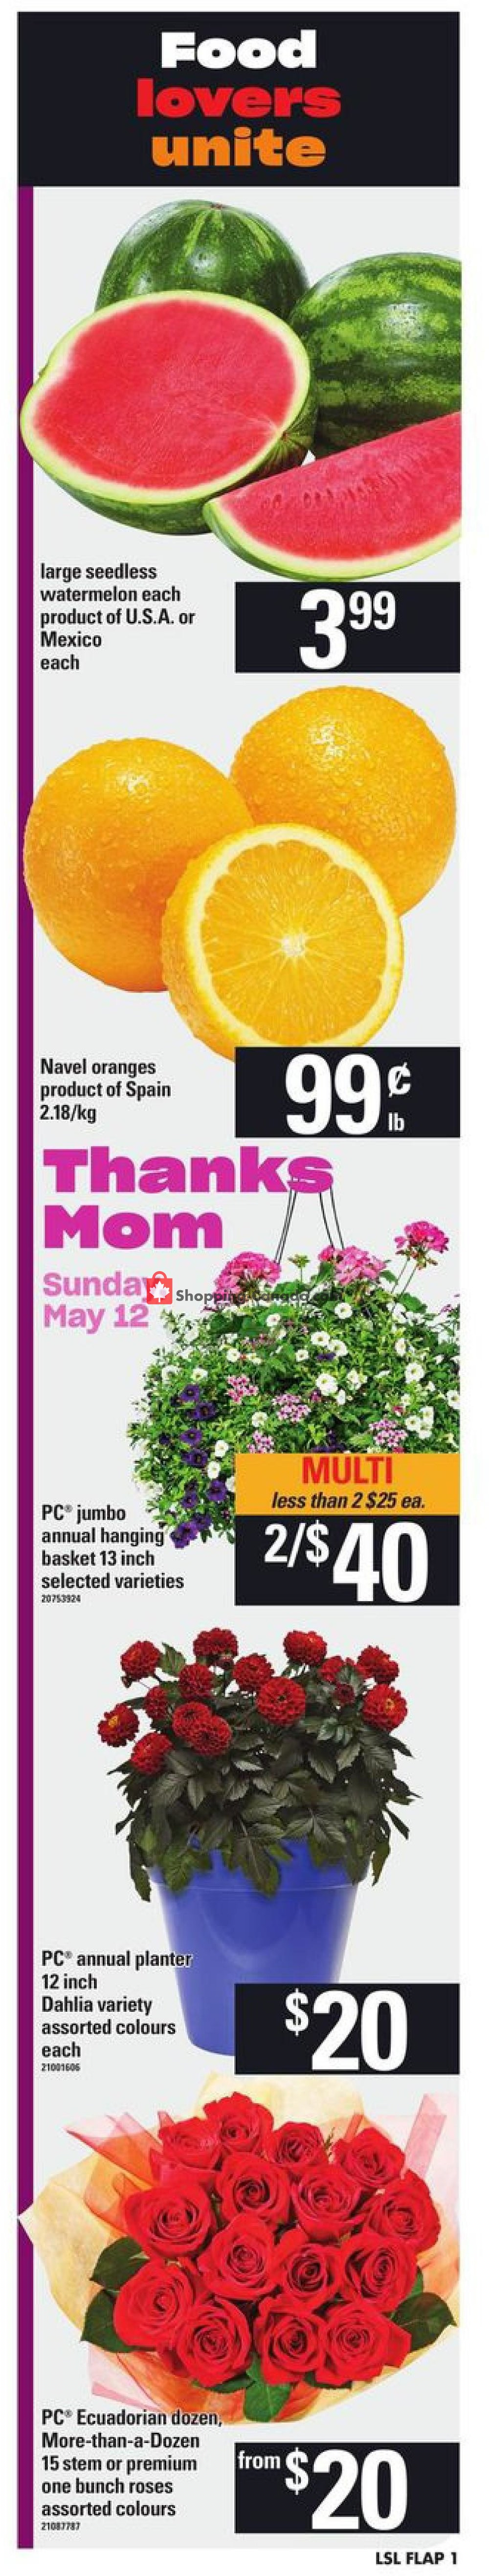 Flyer Loblaws Canada - from Thursday May 9, 2019 to Wednesday May 15, 2019